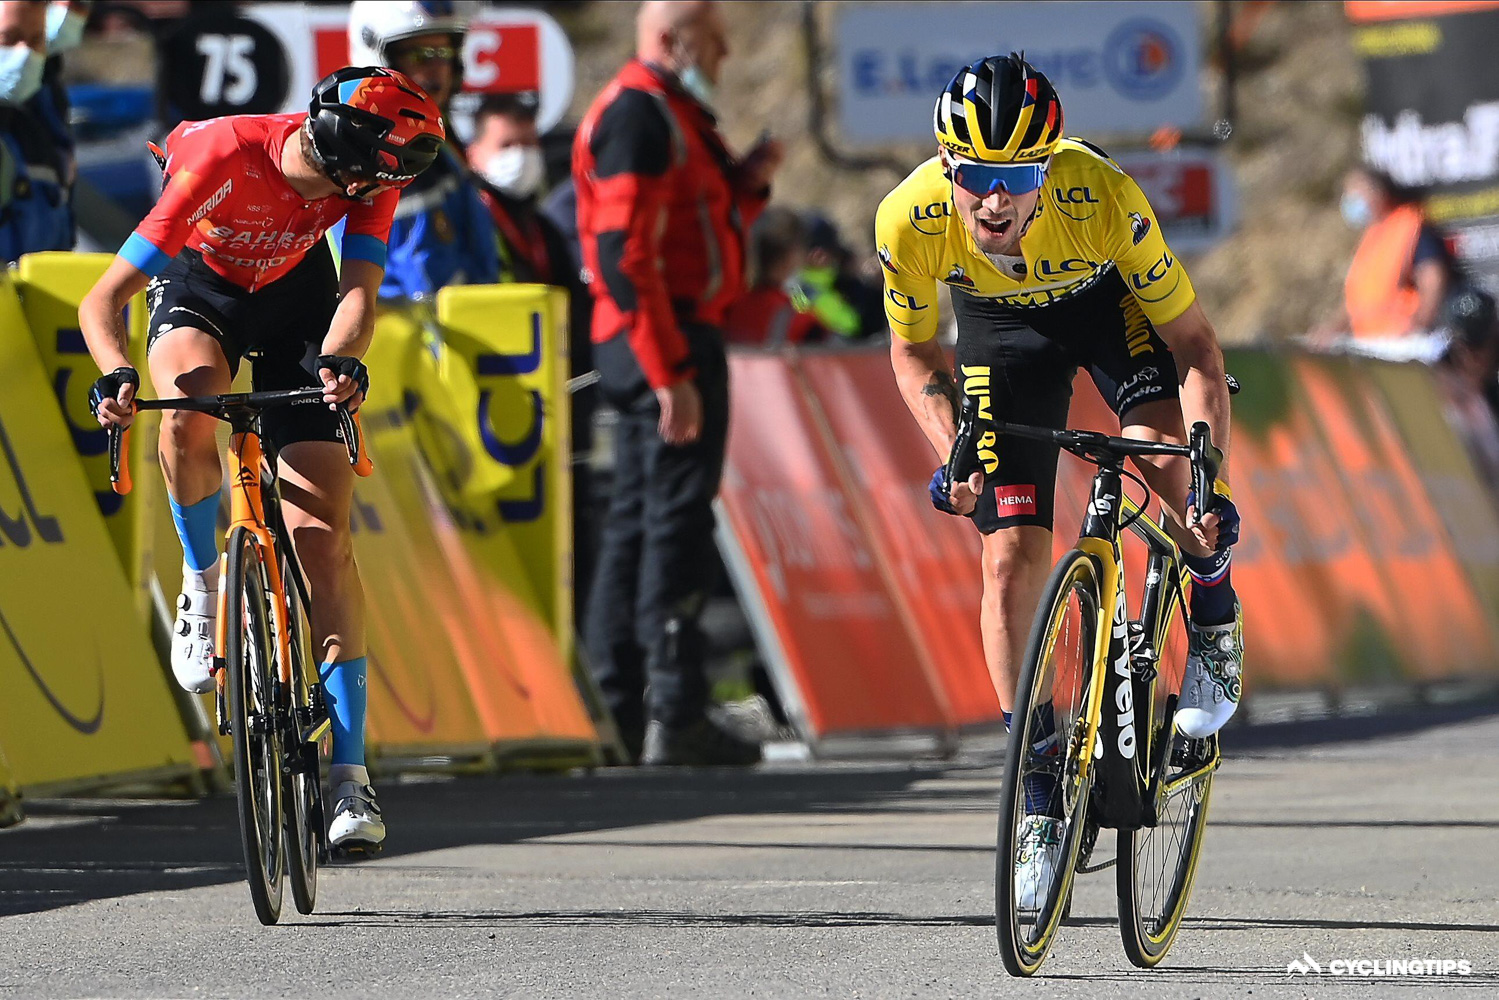 No gifts: Roglic defends his stage win over Gino Mäder